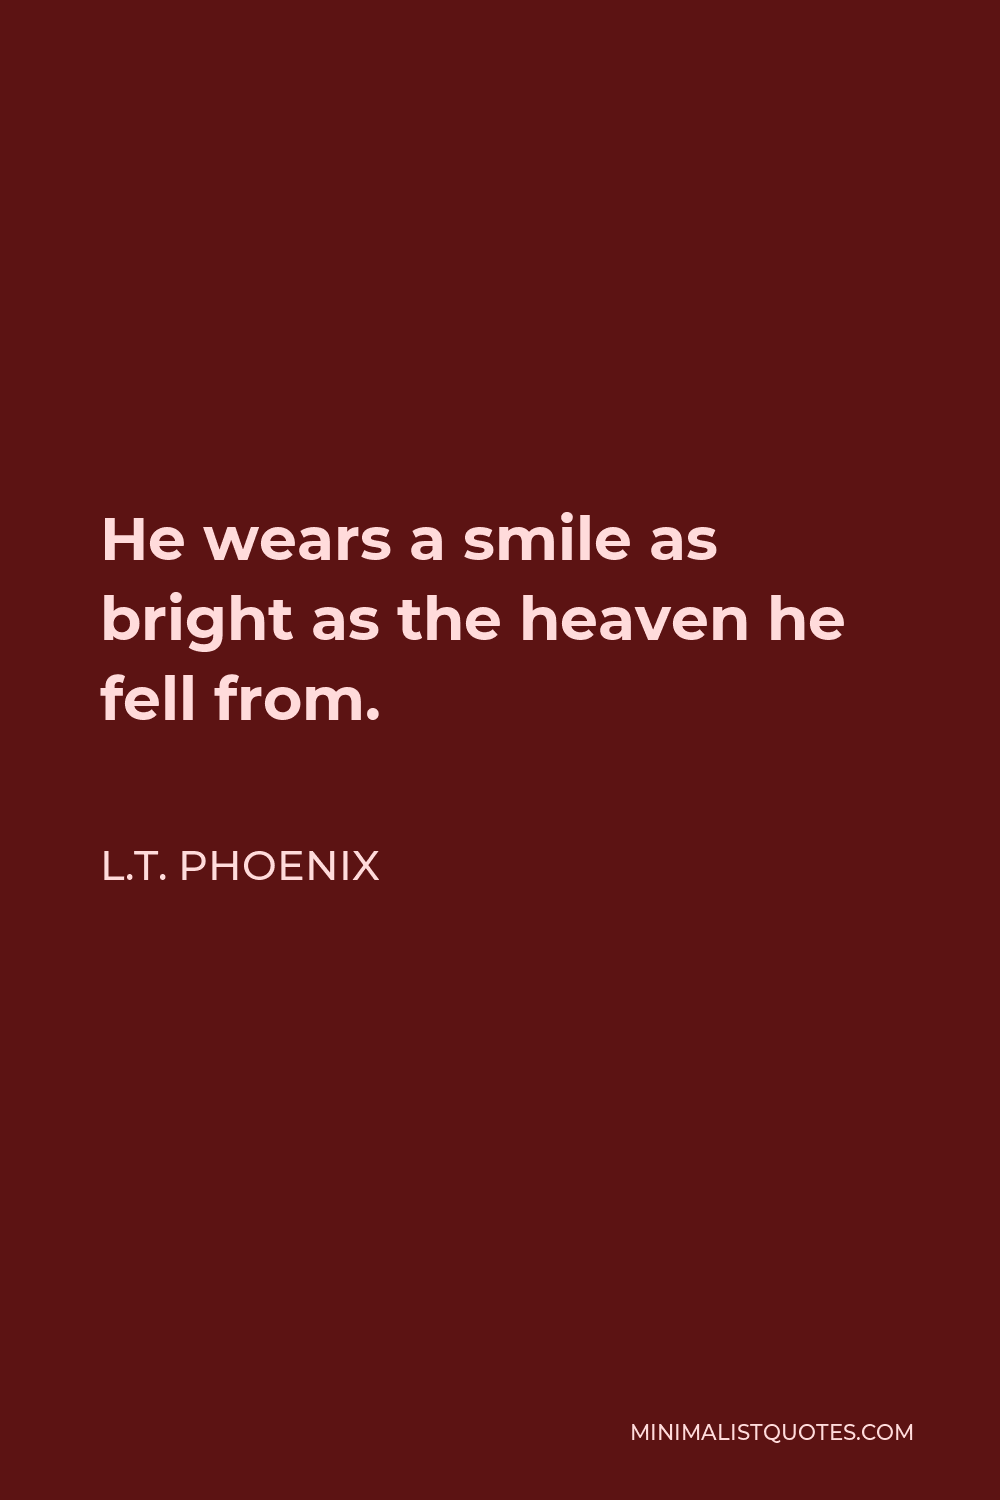 L.T. Phoenix Quote - He wears a smile as bright as the heaven he fell from.